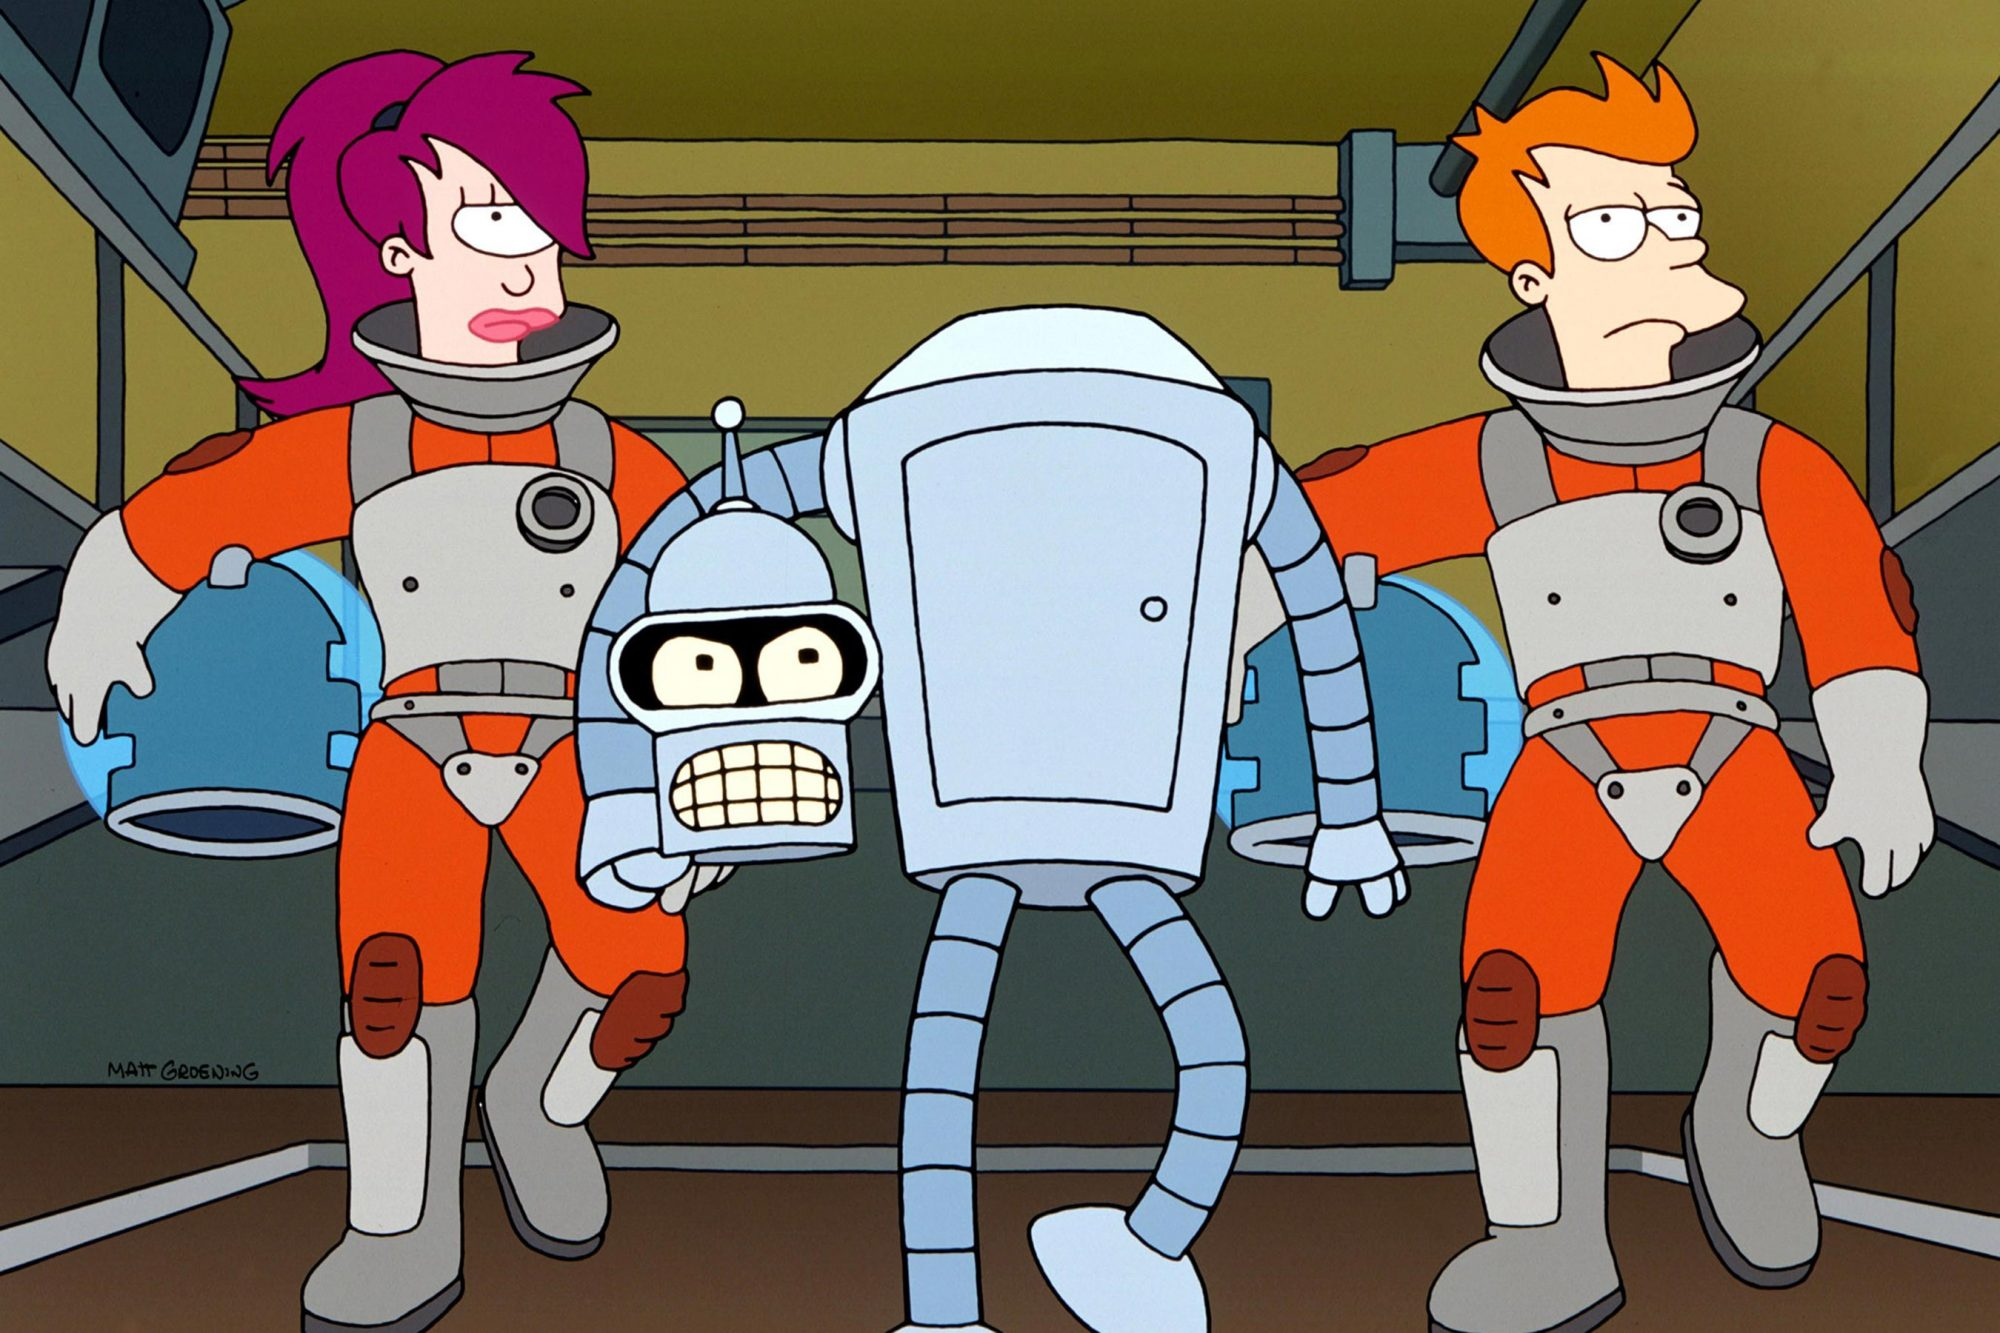 FUTURAMA, Leela, Bender, Fry, 1999-present.  TM and Copyright (c) 20th Century Fox Film Corp. All ri